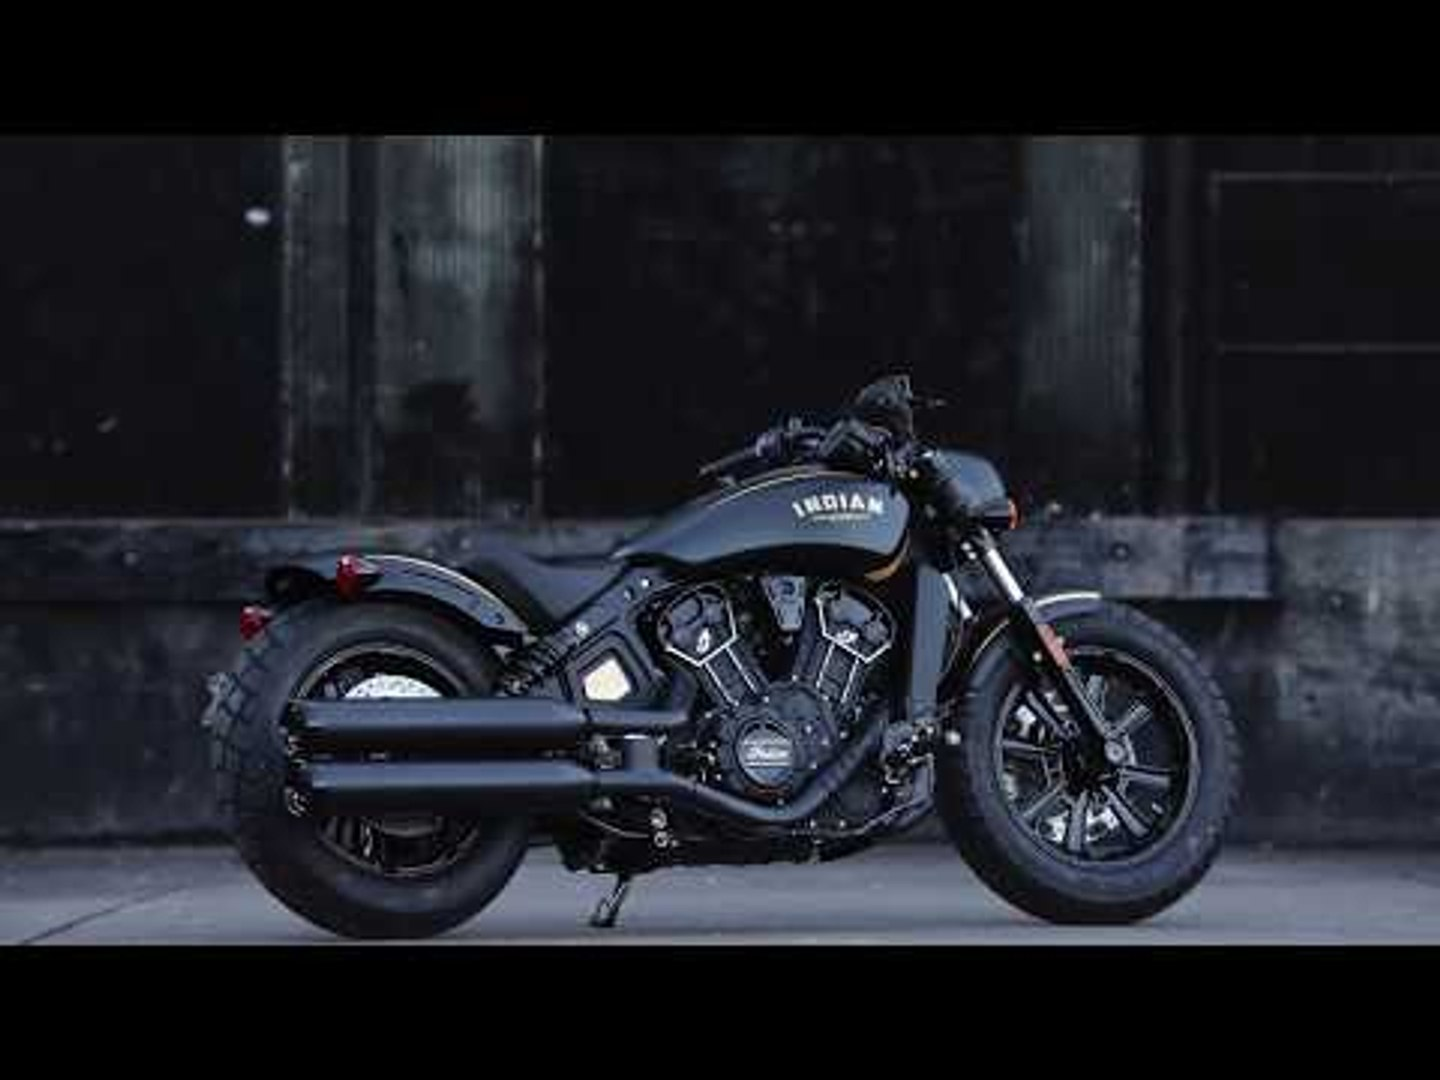 Indian Motorcycle unveils 177 Gold & Black Jack Daniel's Limited edition Scout Bobber model